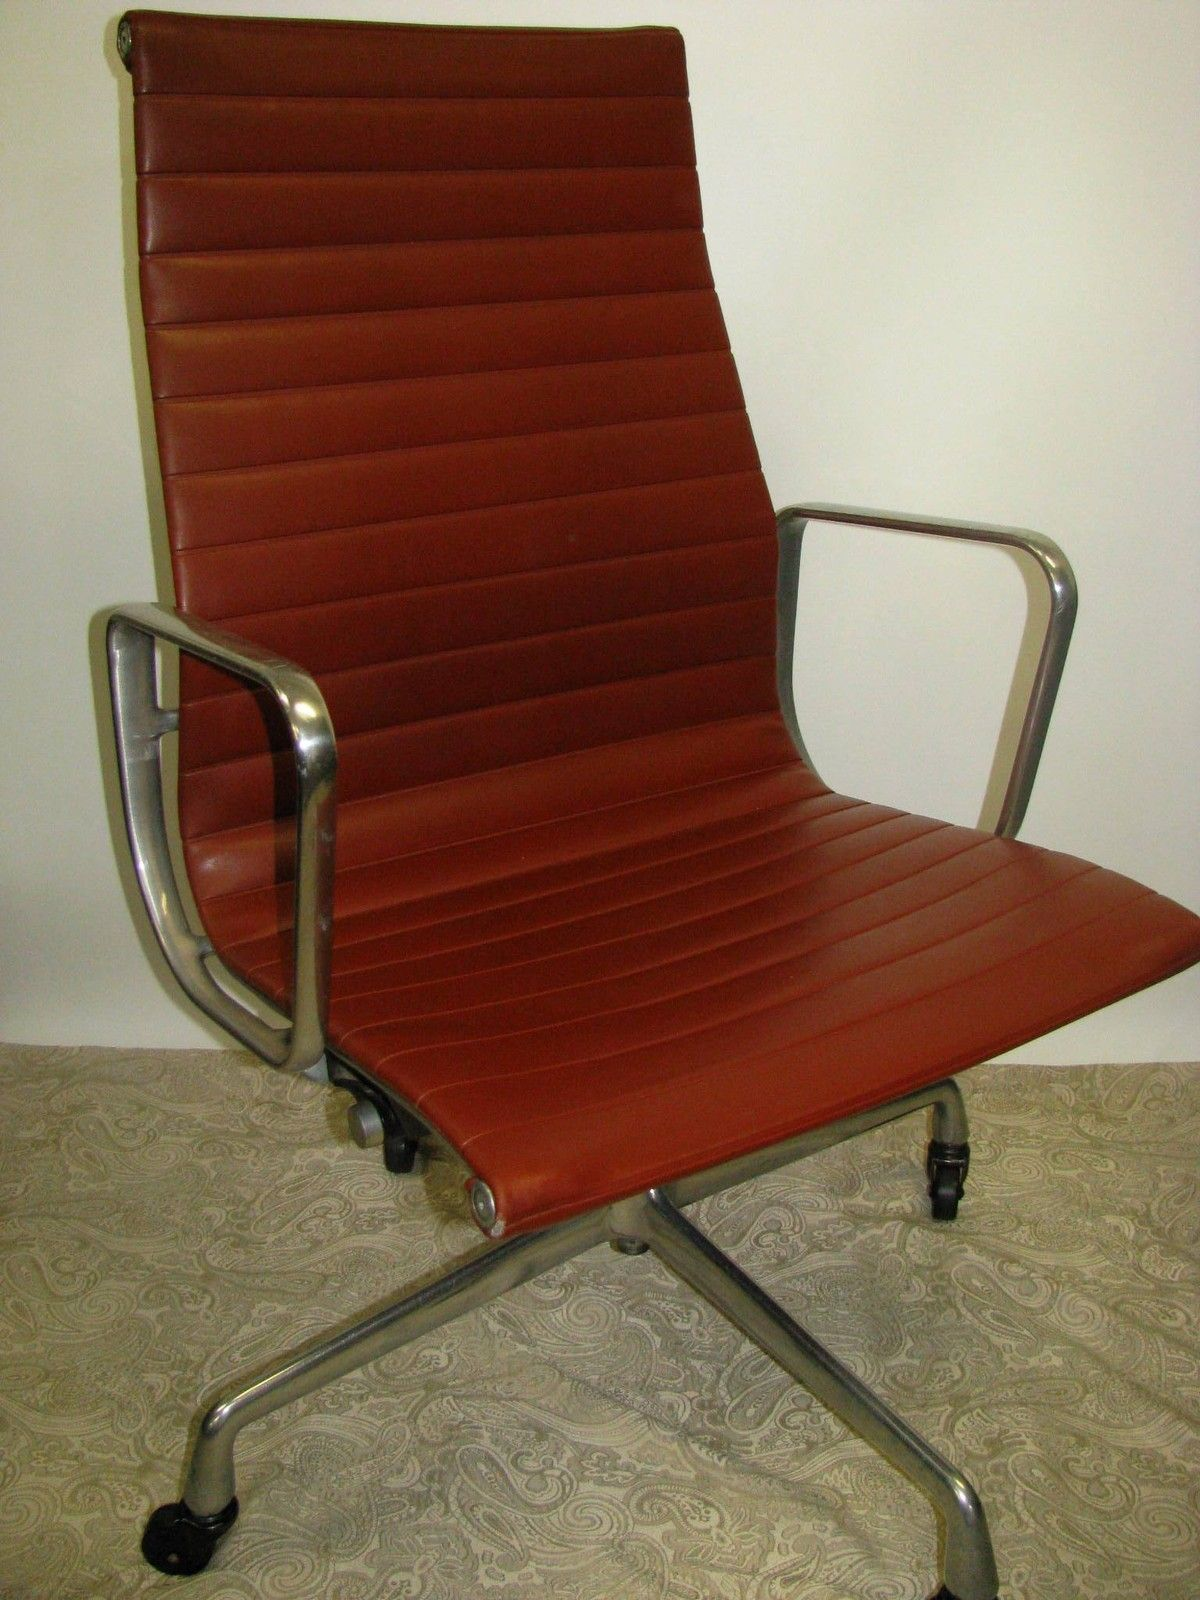 Eames Chair Herman Miller Ebay Vintage Eames Aluminum Group Executive Chair Herman Miller Chairtech